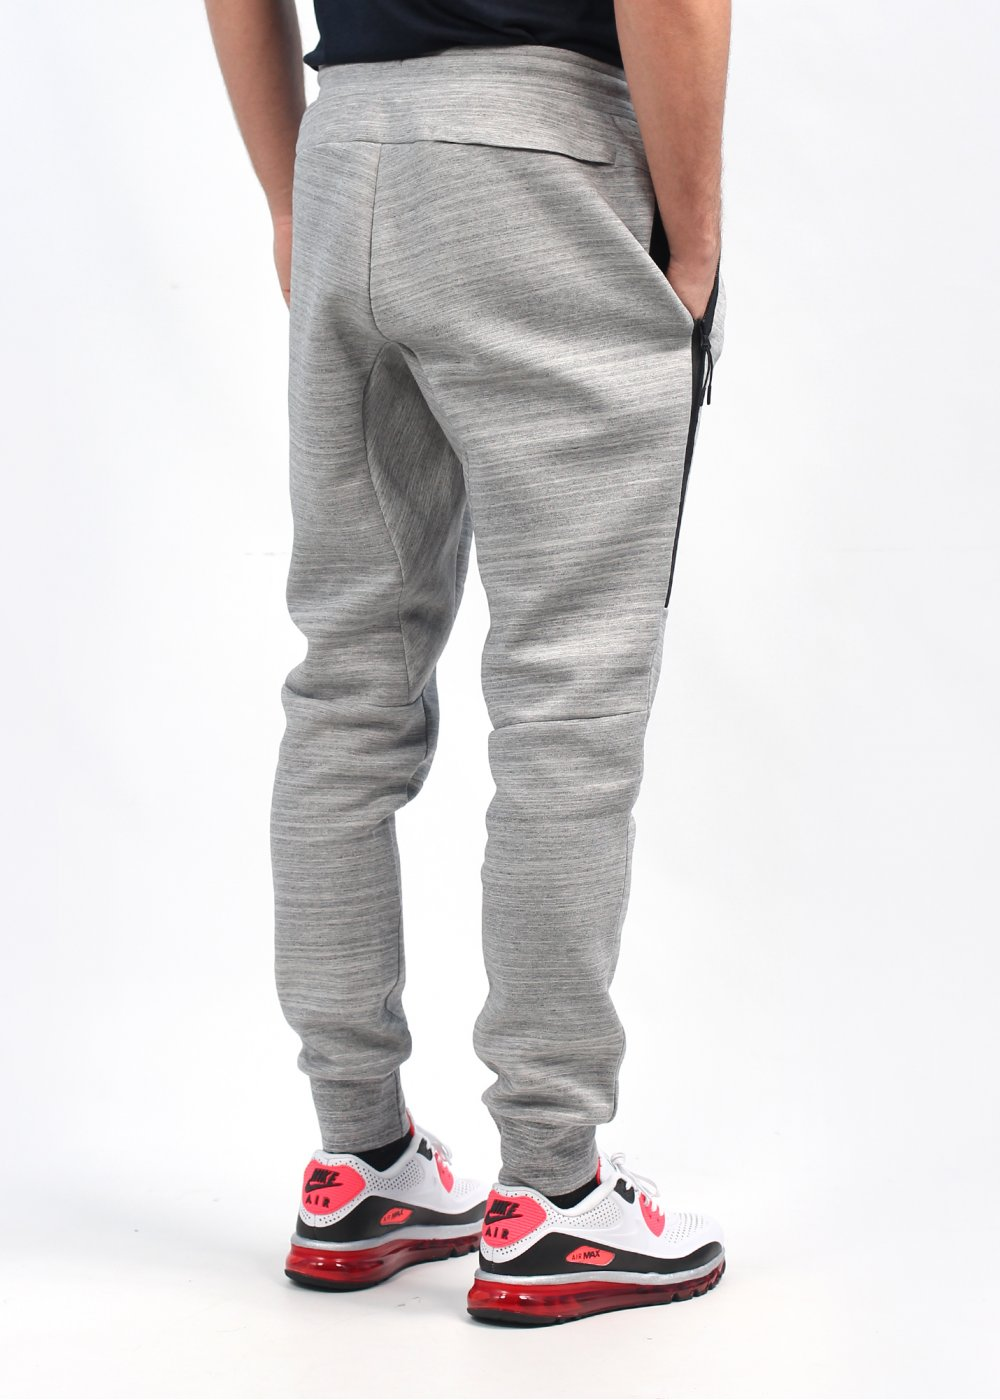 Perfect Nike  FCRB Jogger Pants In Heather Grey  SOLETOPIA